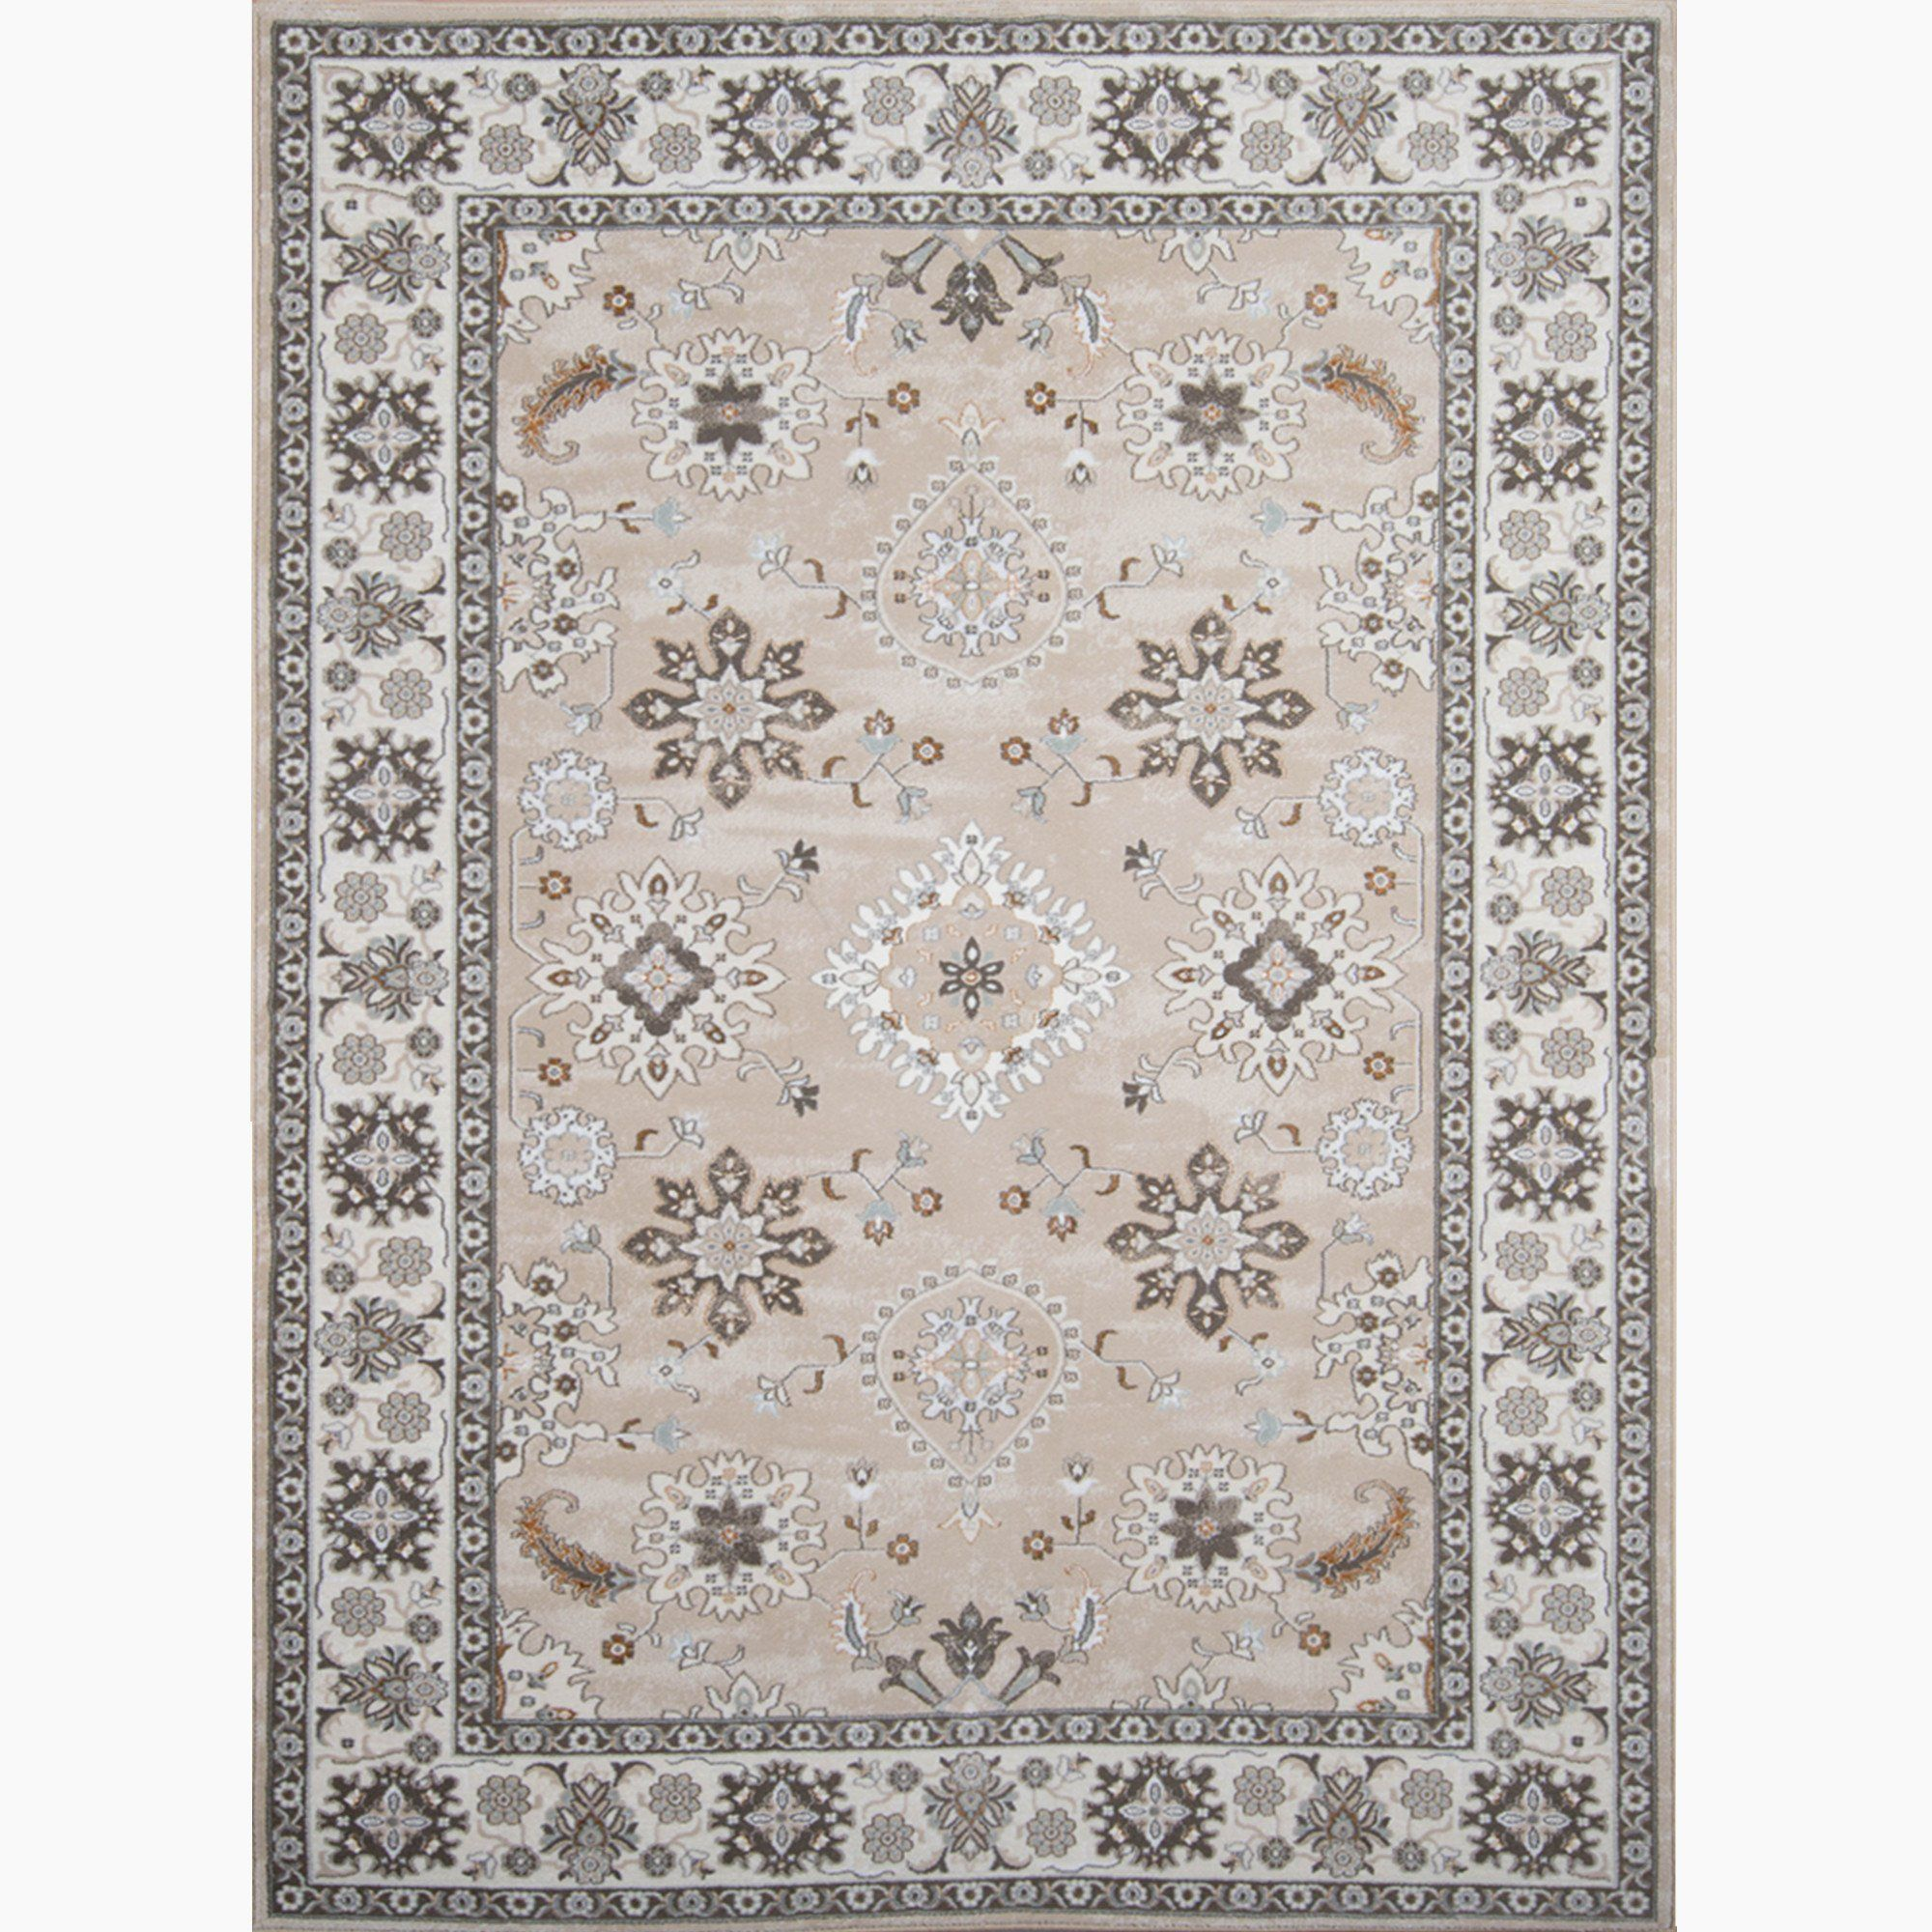 Airmont Area Rug 3220150 Products Traditional area